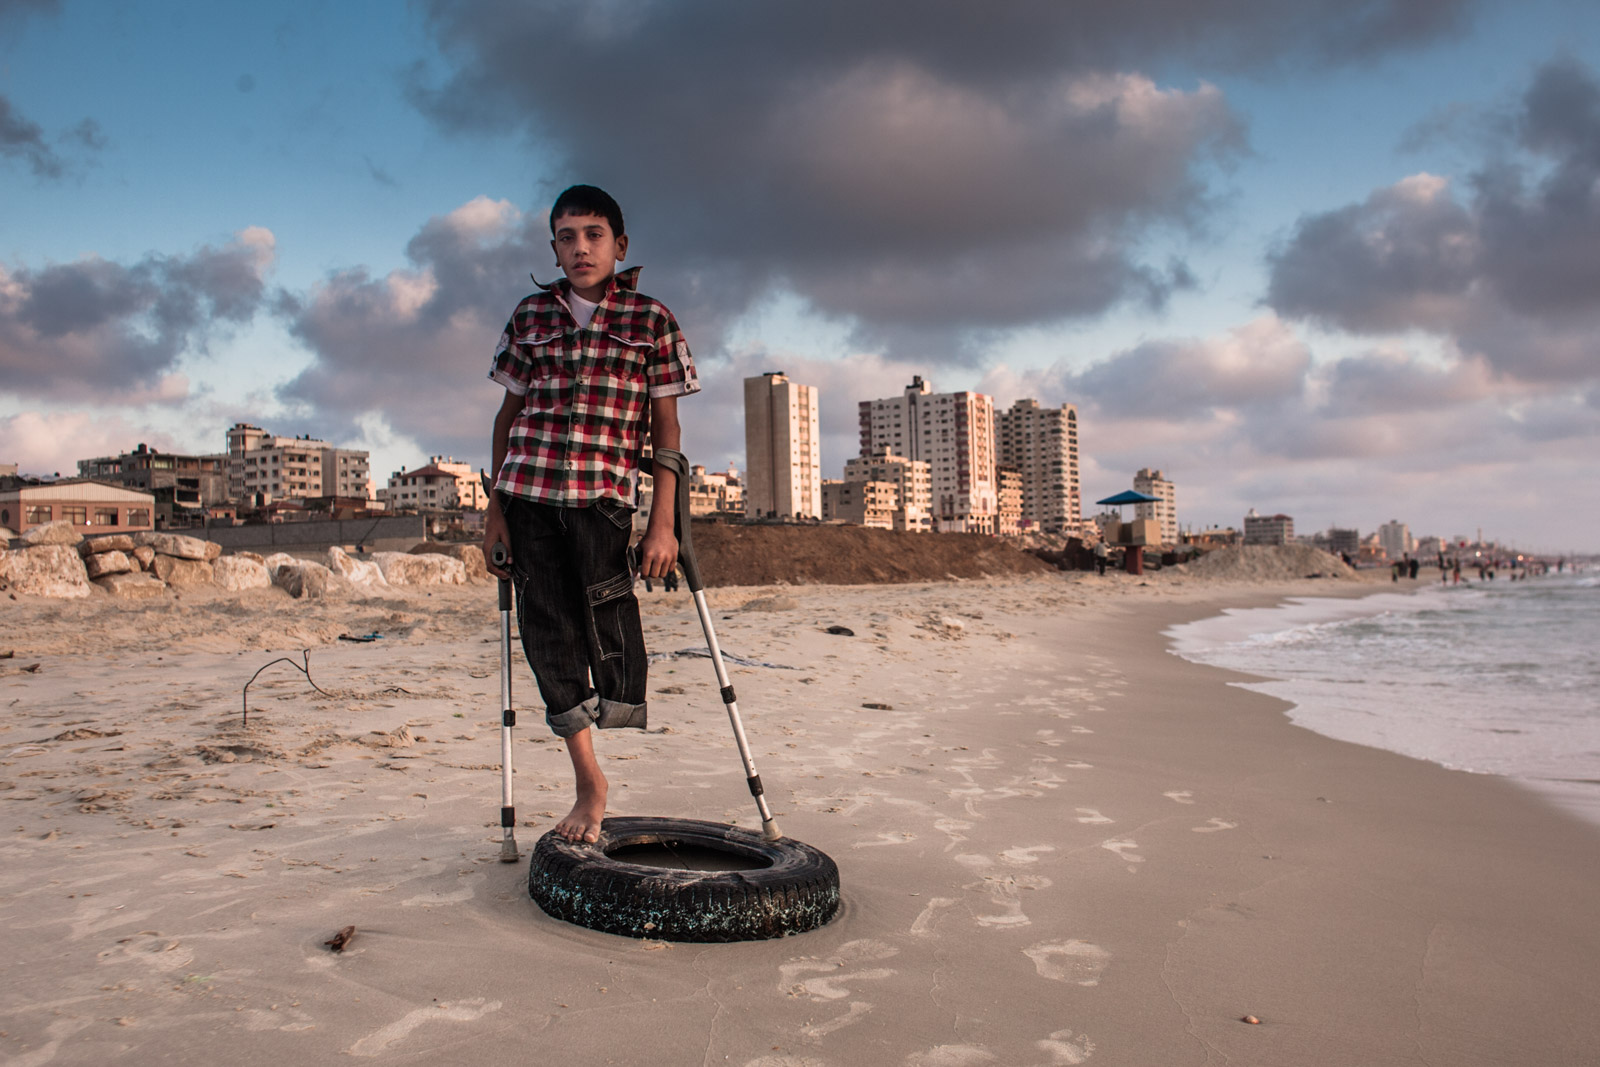 Gaza City, Gaza - June 7, 2011: Fadi Al-Arir poses for a portrait on a beach in Gaza City, Gaza Strip. Fadi injured his leg playing football in his home in December 2008. Due to inadequate medical treatment and rehabilitation, Fadi's broken leg had to be amputated due to gangrene infection. During the Israeli military operation dubbed Cast Lead in December 2008 and January 2009, hospitals in Gaza were overcrowded causing insufficient availability of medical care. In 2010 Fadi was part of the Slovenian University Rehabilitation Center Soča program for juvenile victims of war where he was taught to use prosthetic legs, which he outgrew after a year, rendering it useless.